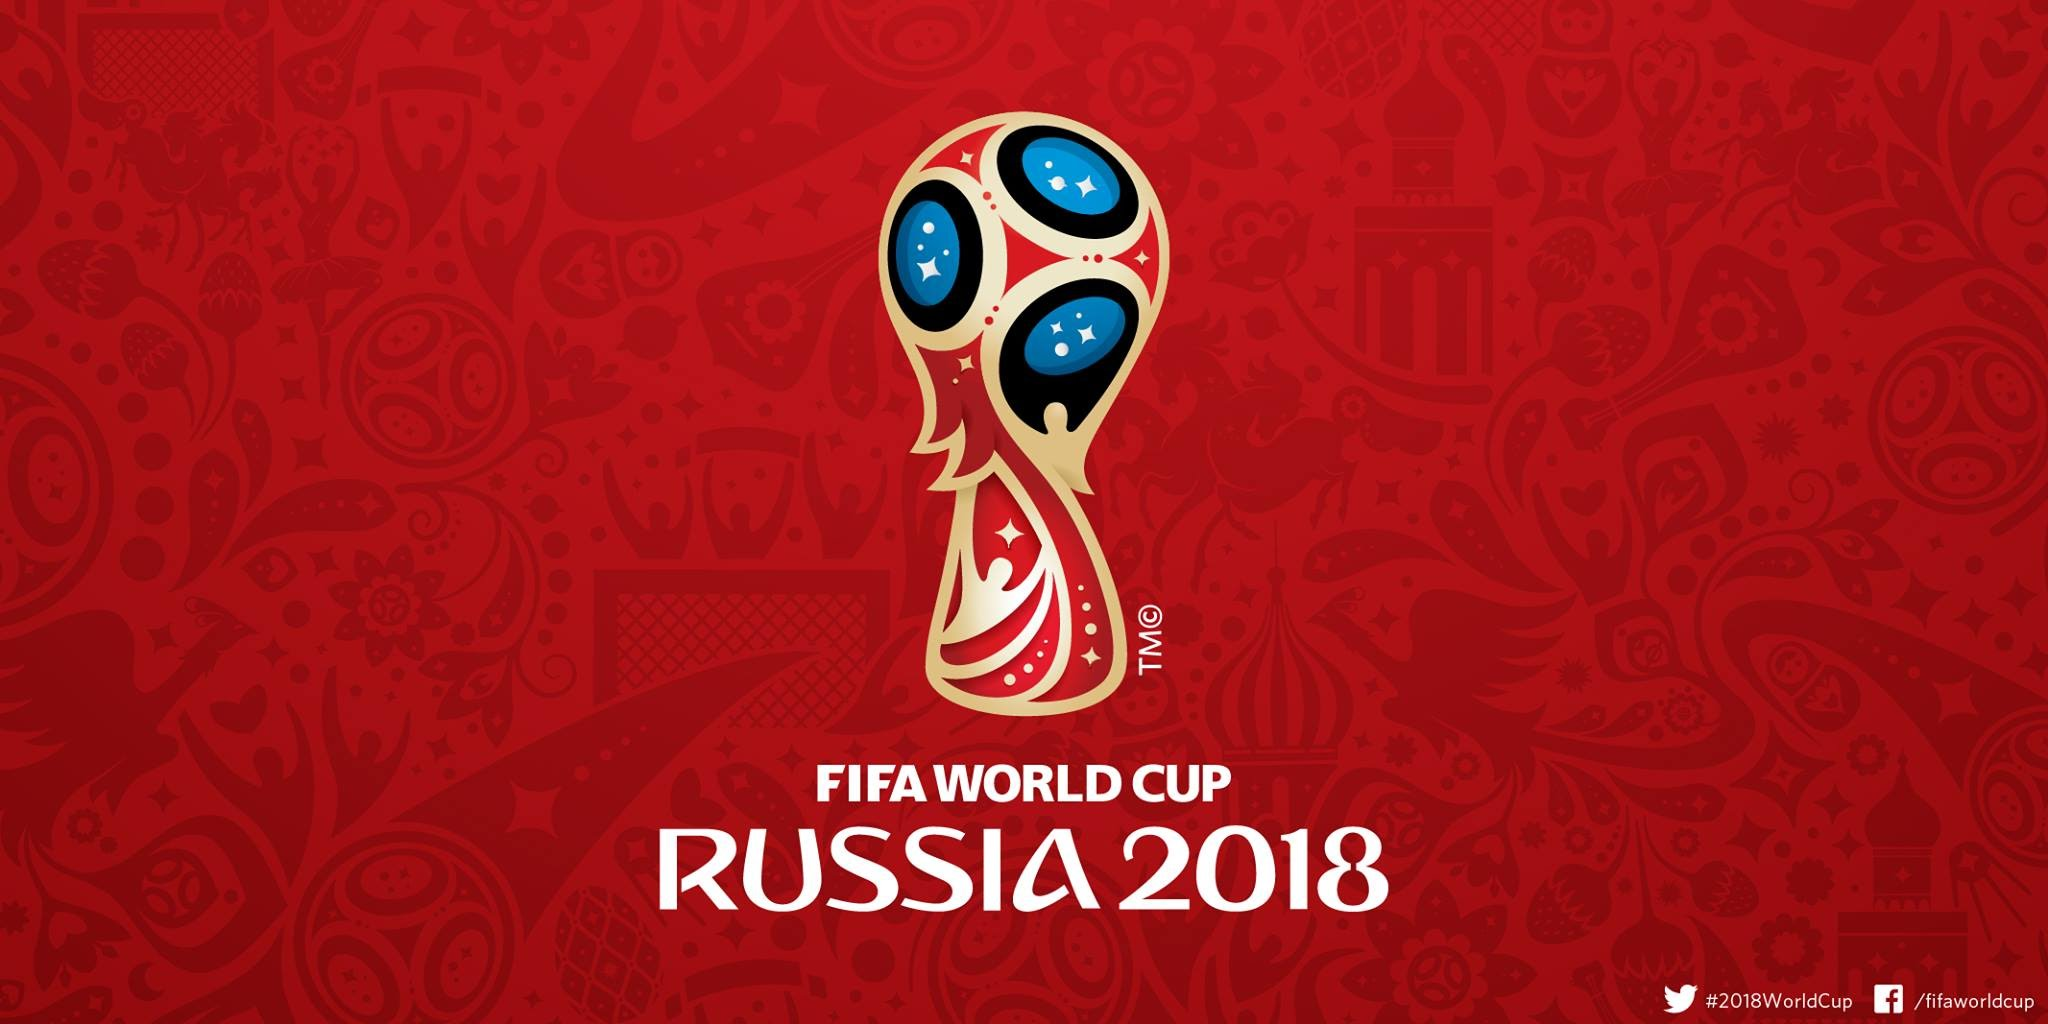 Russia world cup promotion